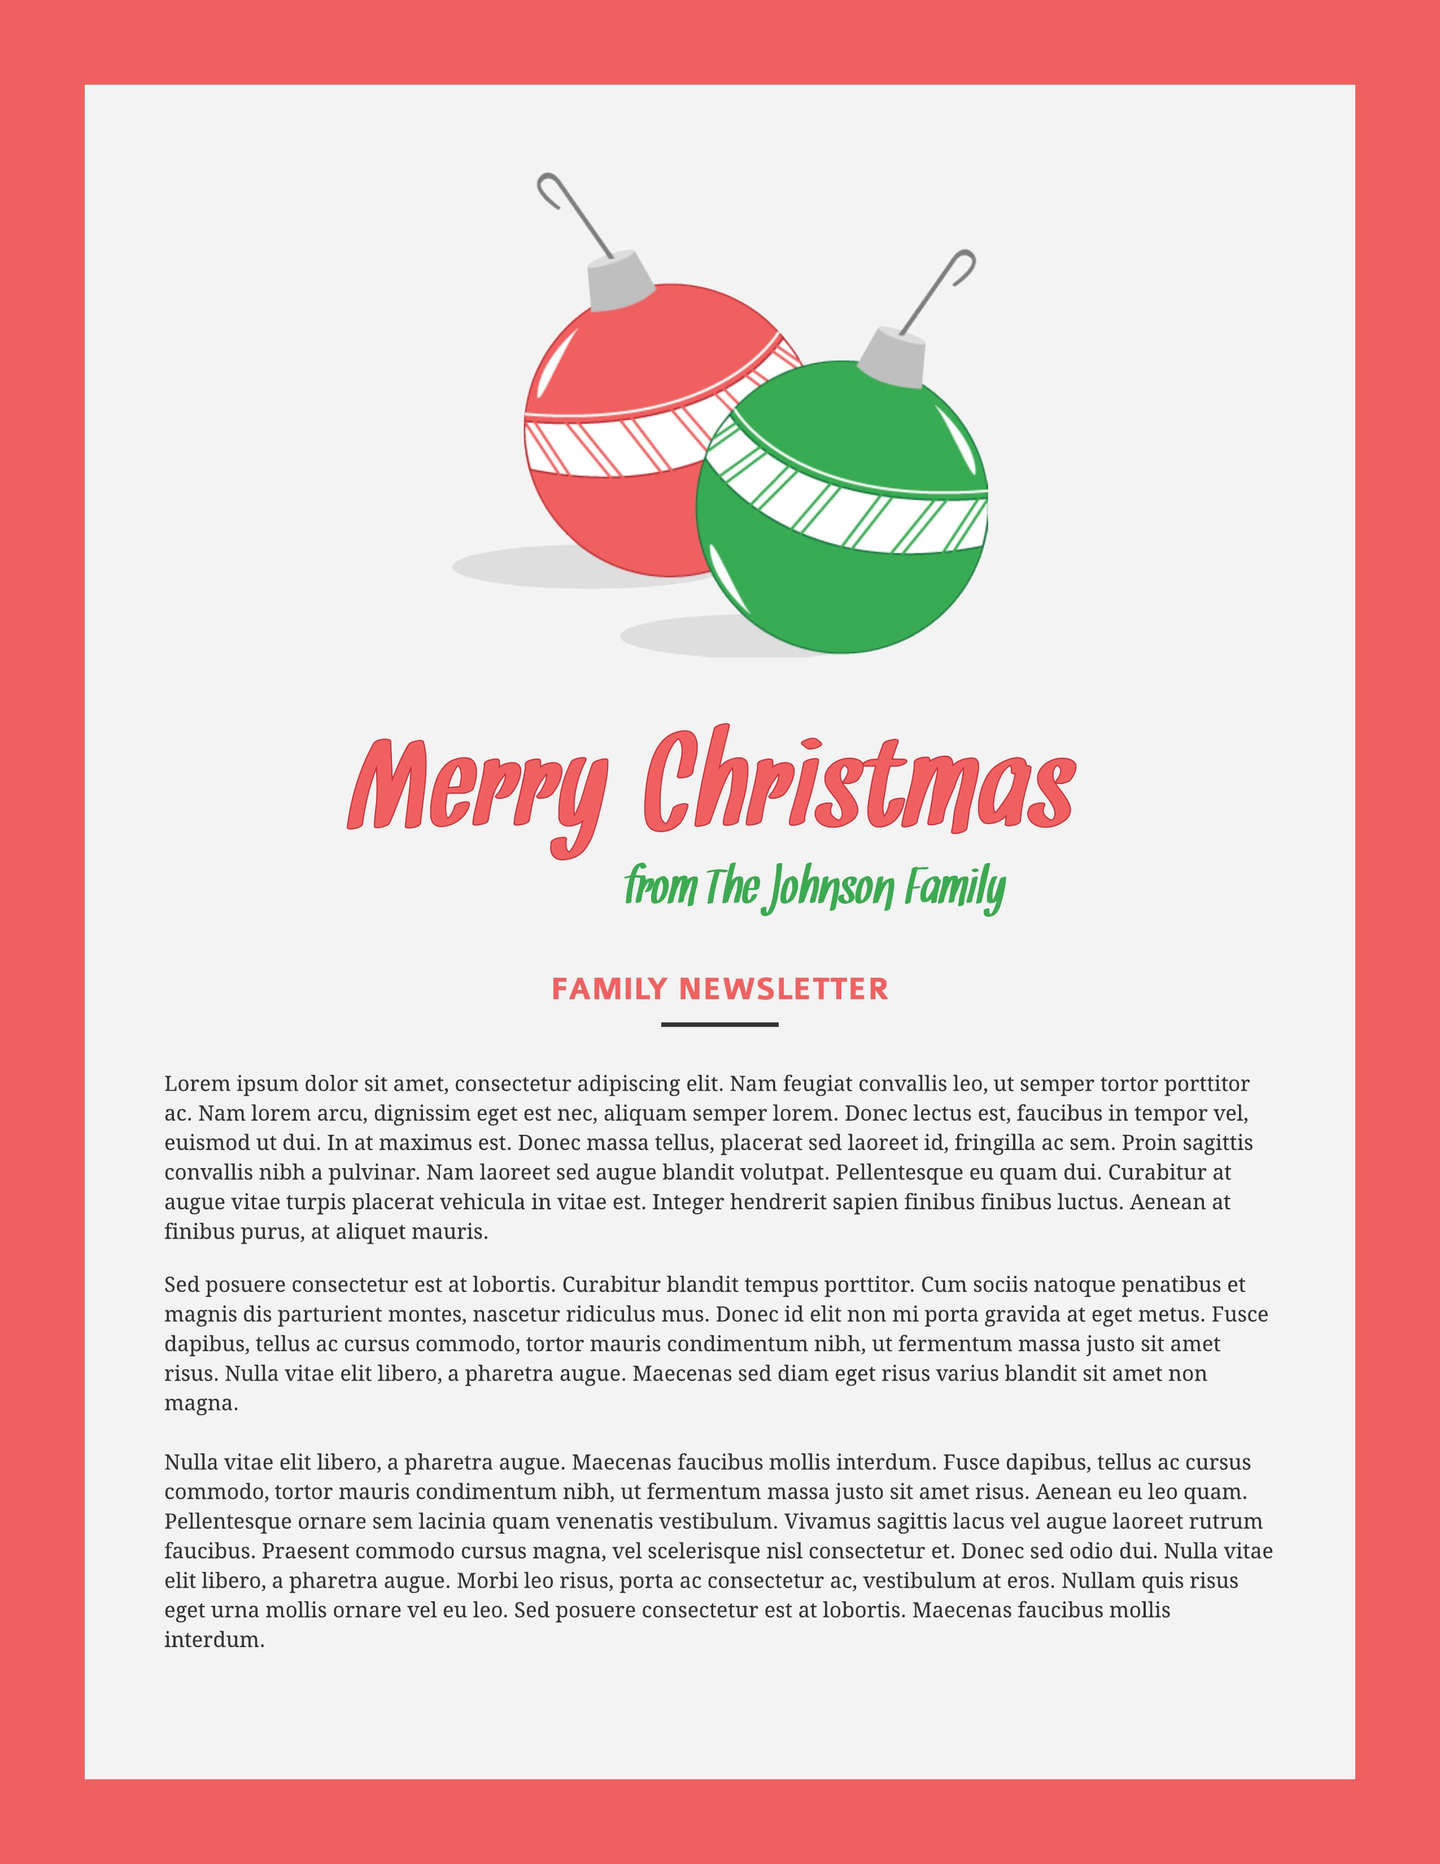 18 free holiday templates examples lucidpress holiday christmas newsletter template spiritdancerdesigns Images